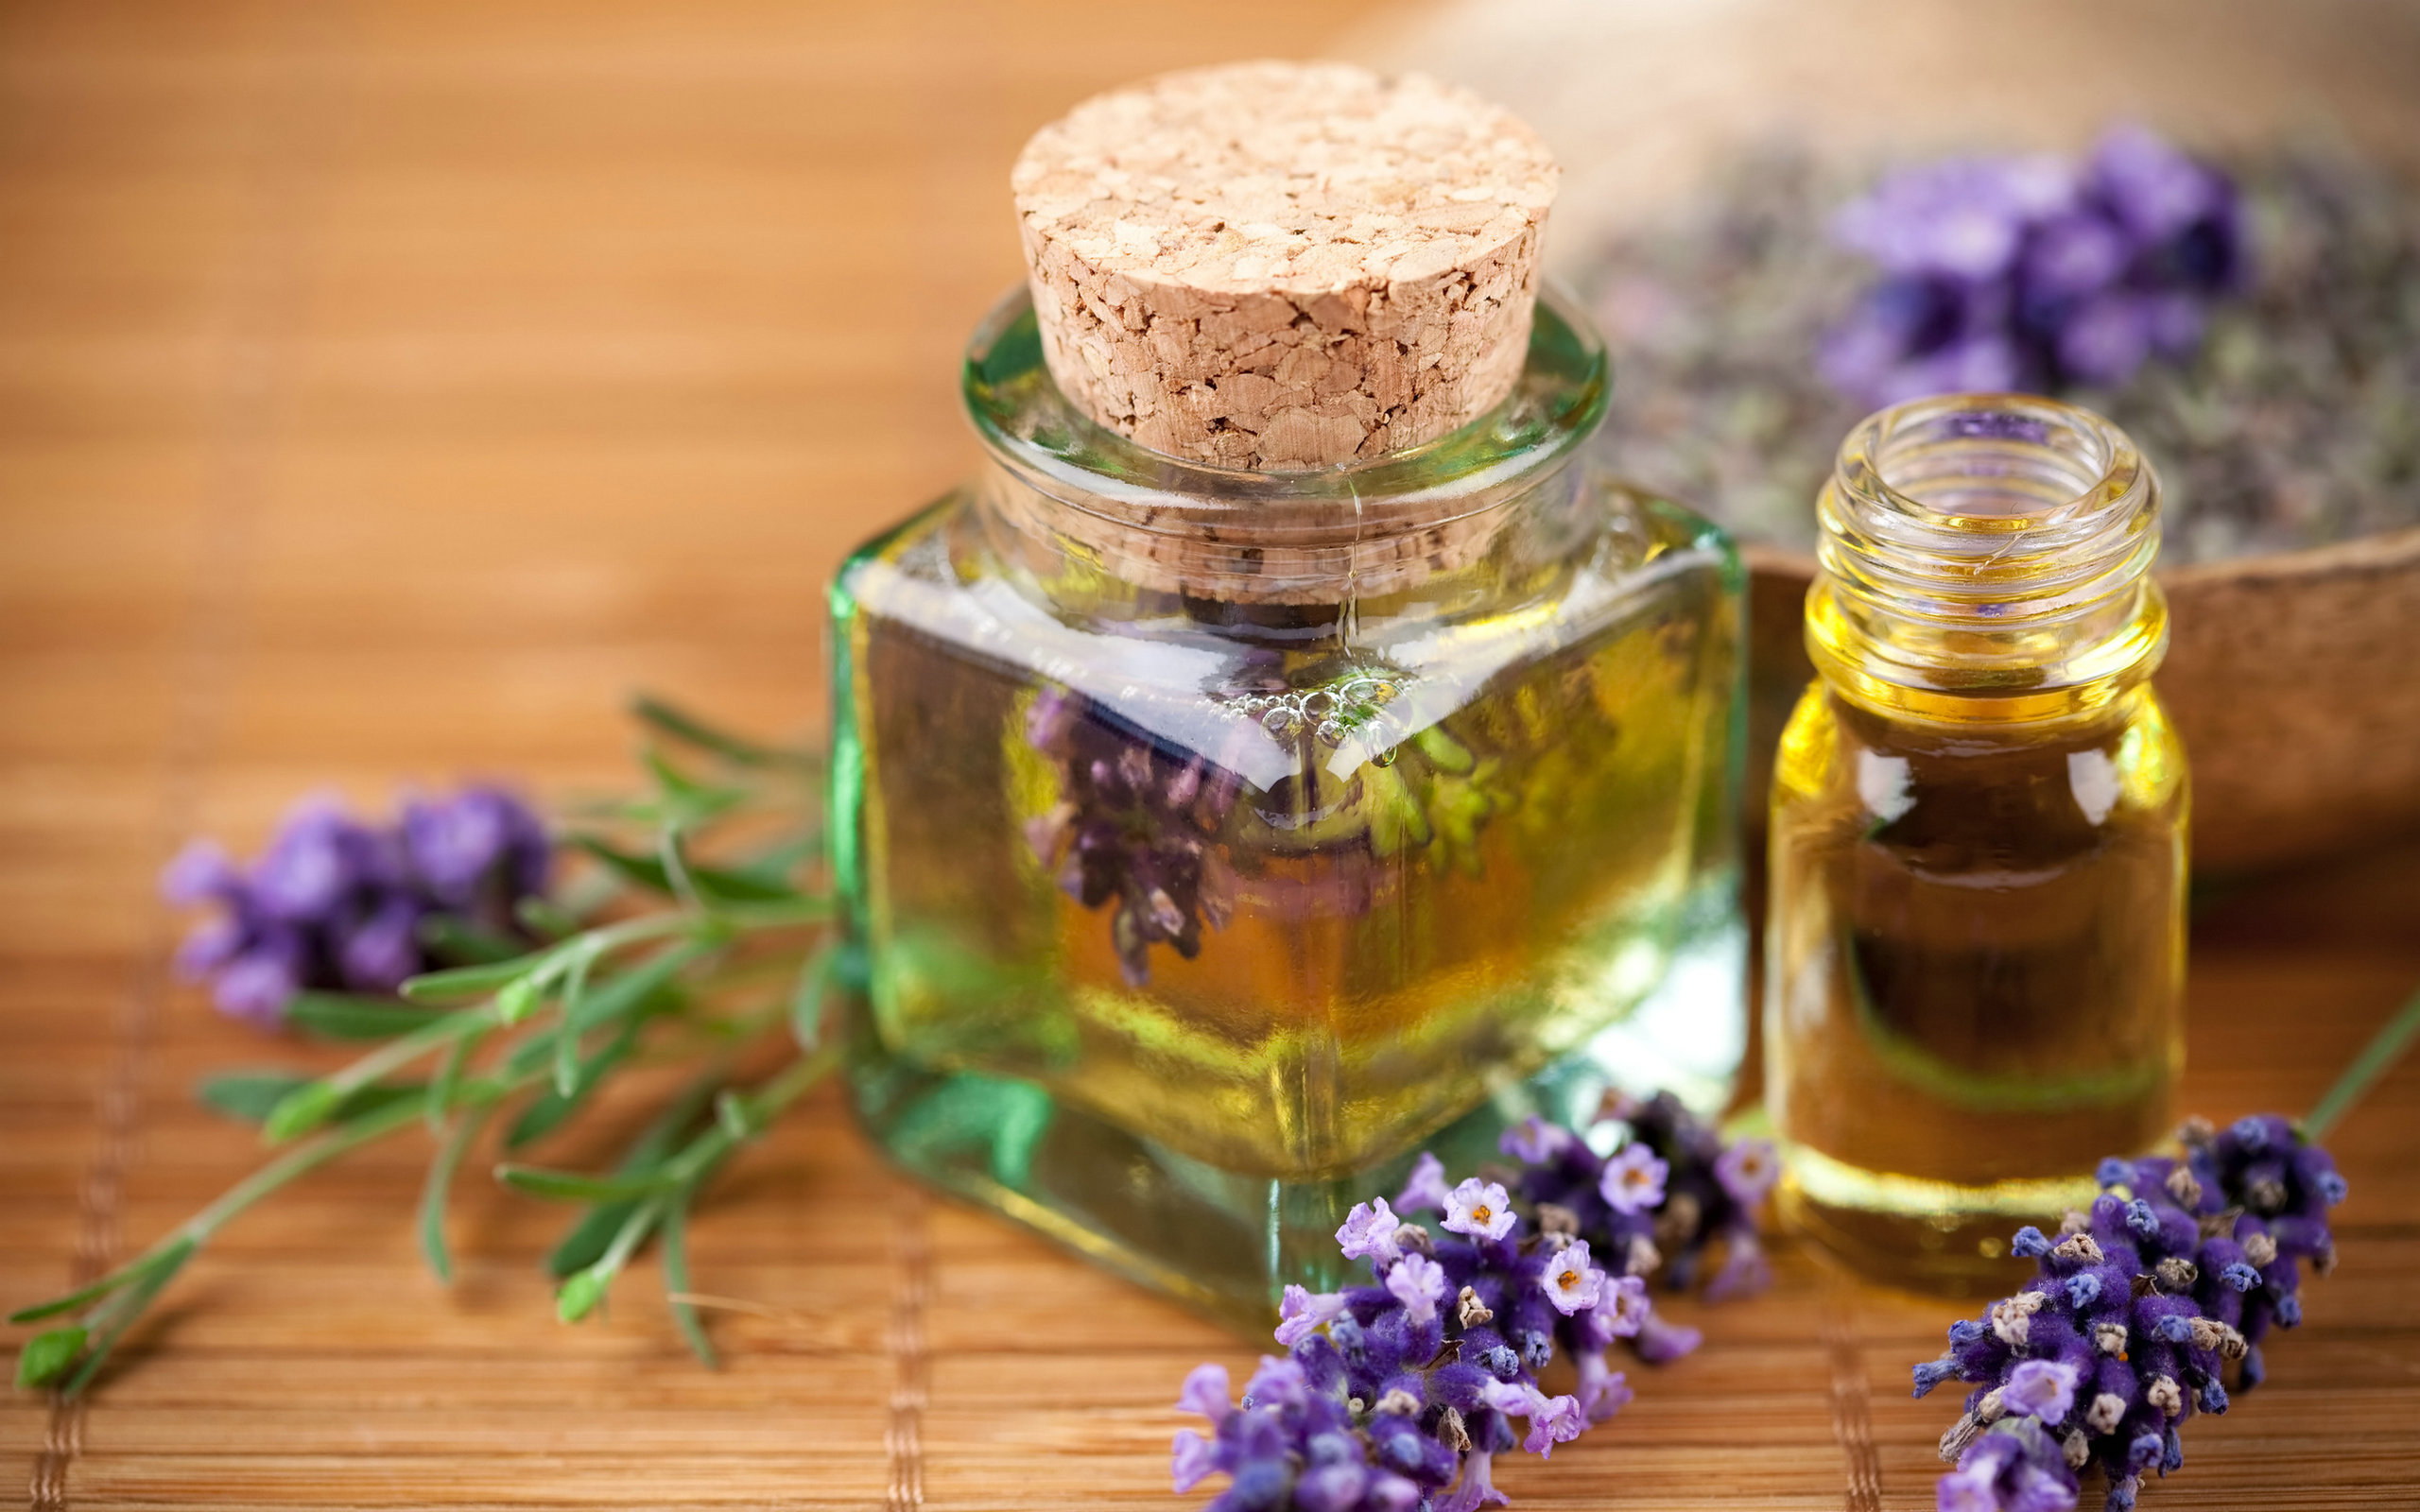 Lavender Oil Must Have In Your Medicine Cabinet